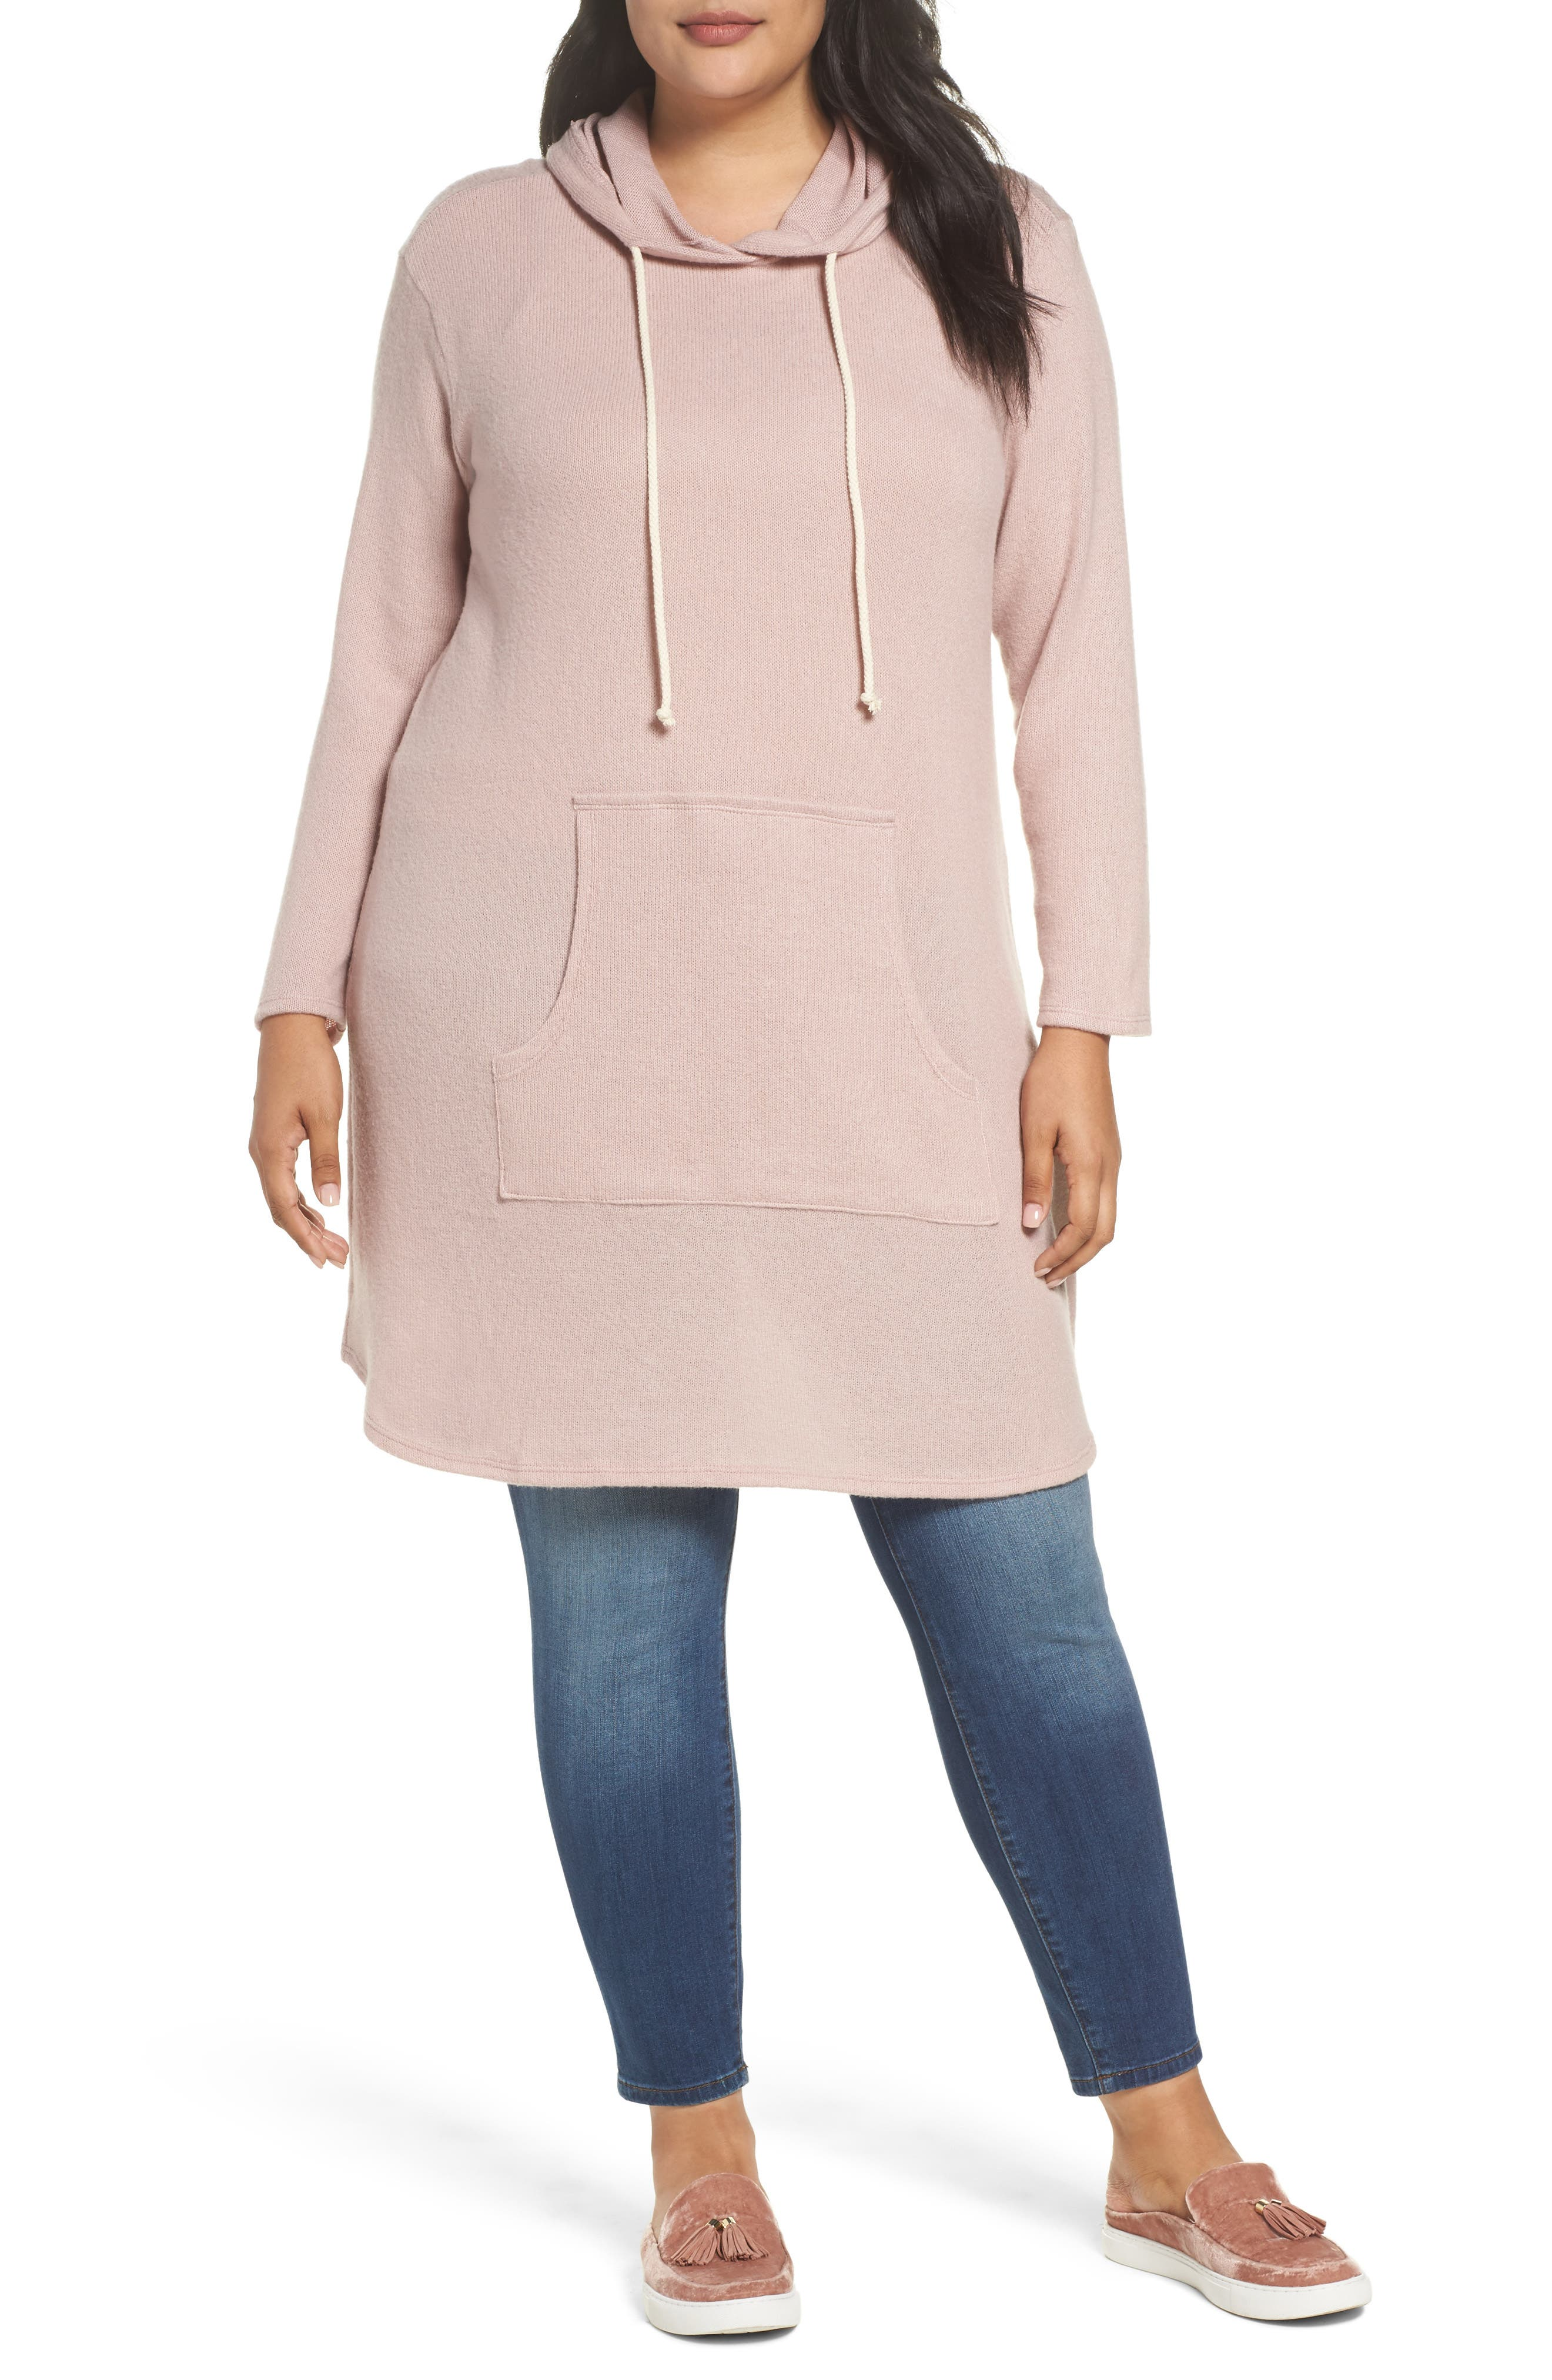 Main Image - Caslon® Hooded Knit Tunic (Plus Size)